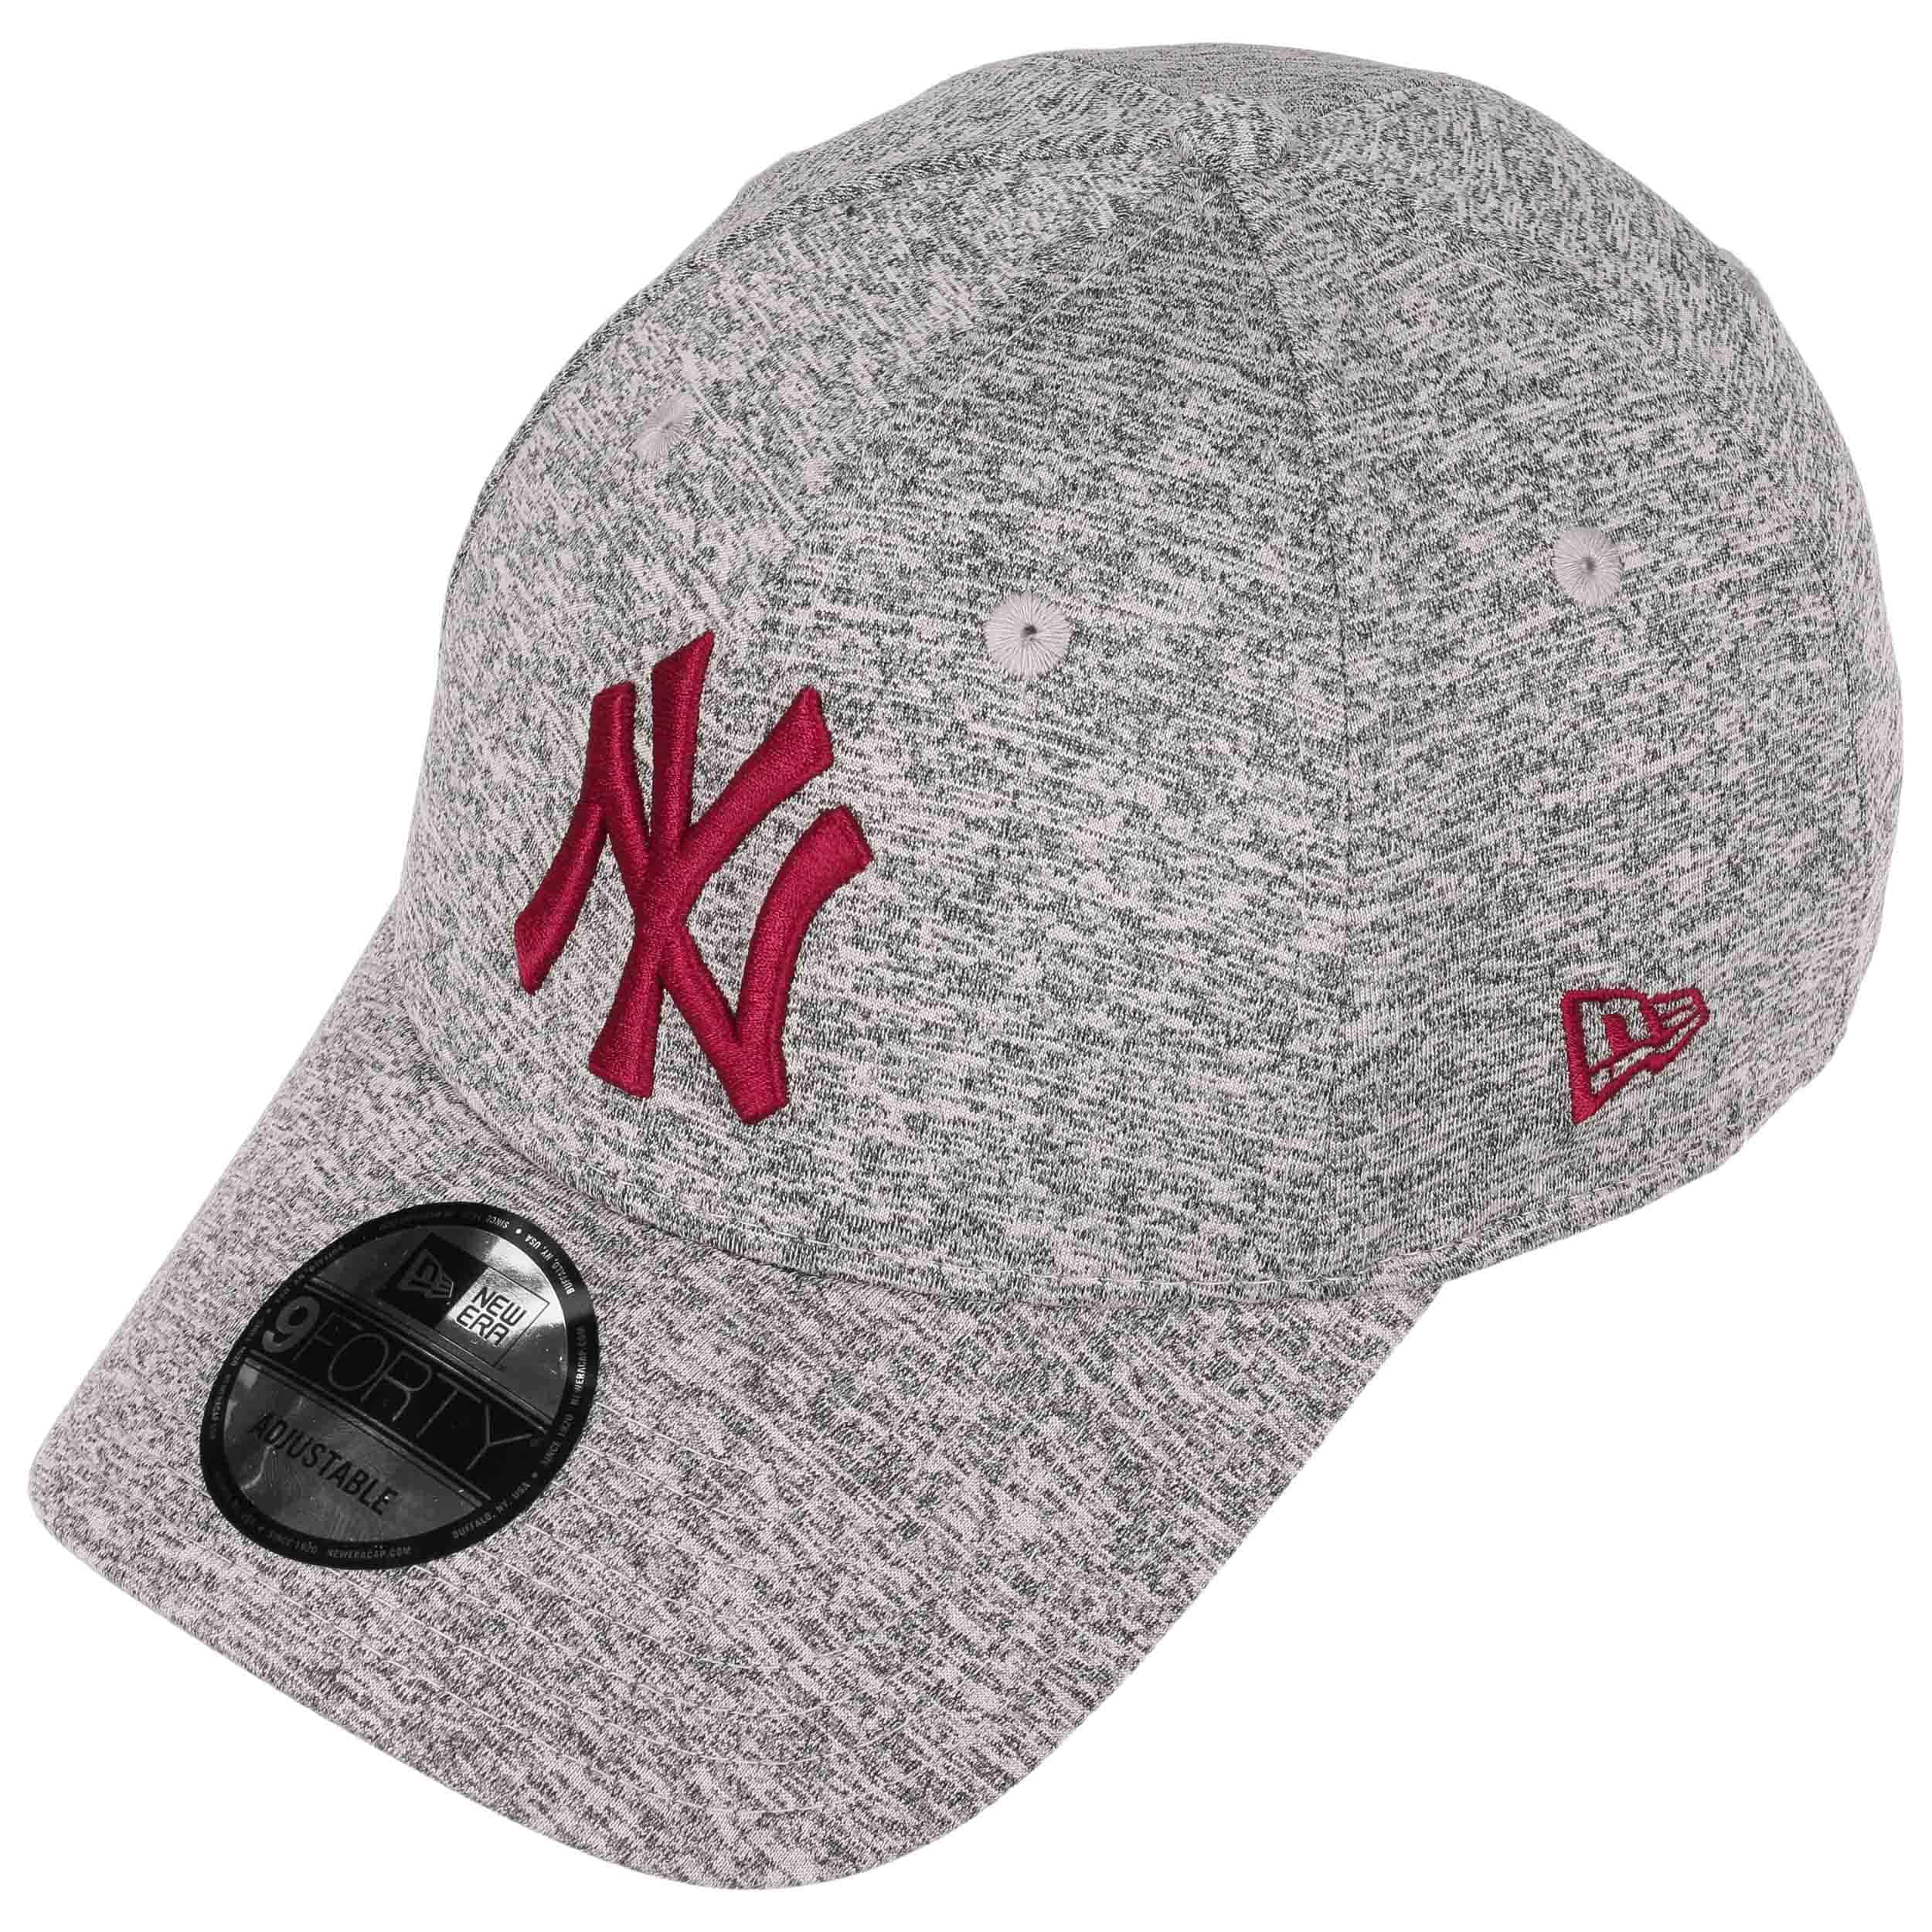 332a7988248ac 9Forty Tech Jersey Yankees Cap by New Era - grey-red 1 ...